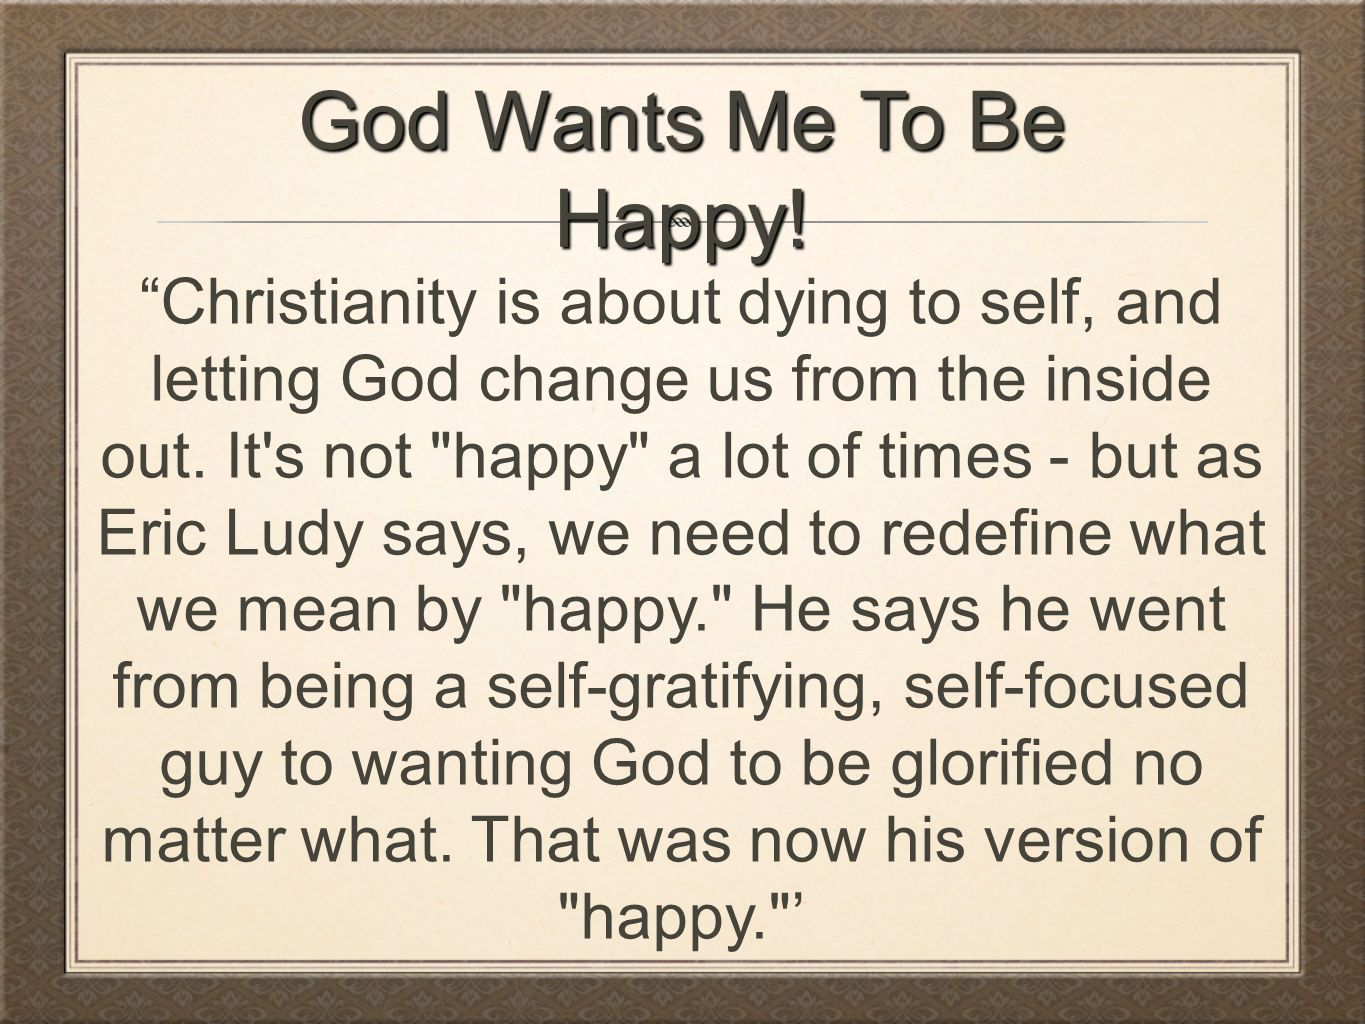 God Wants Me To Be Happy!